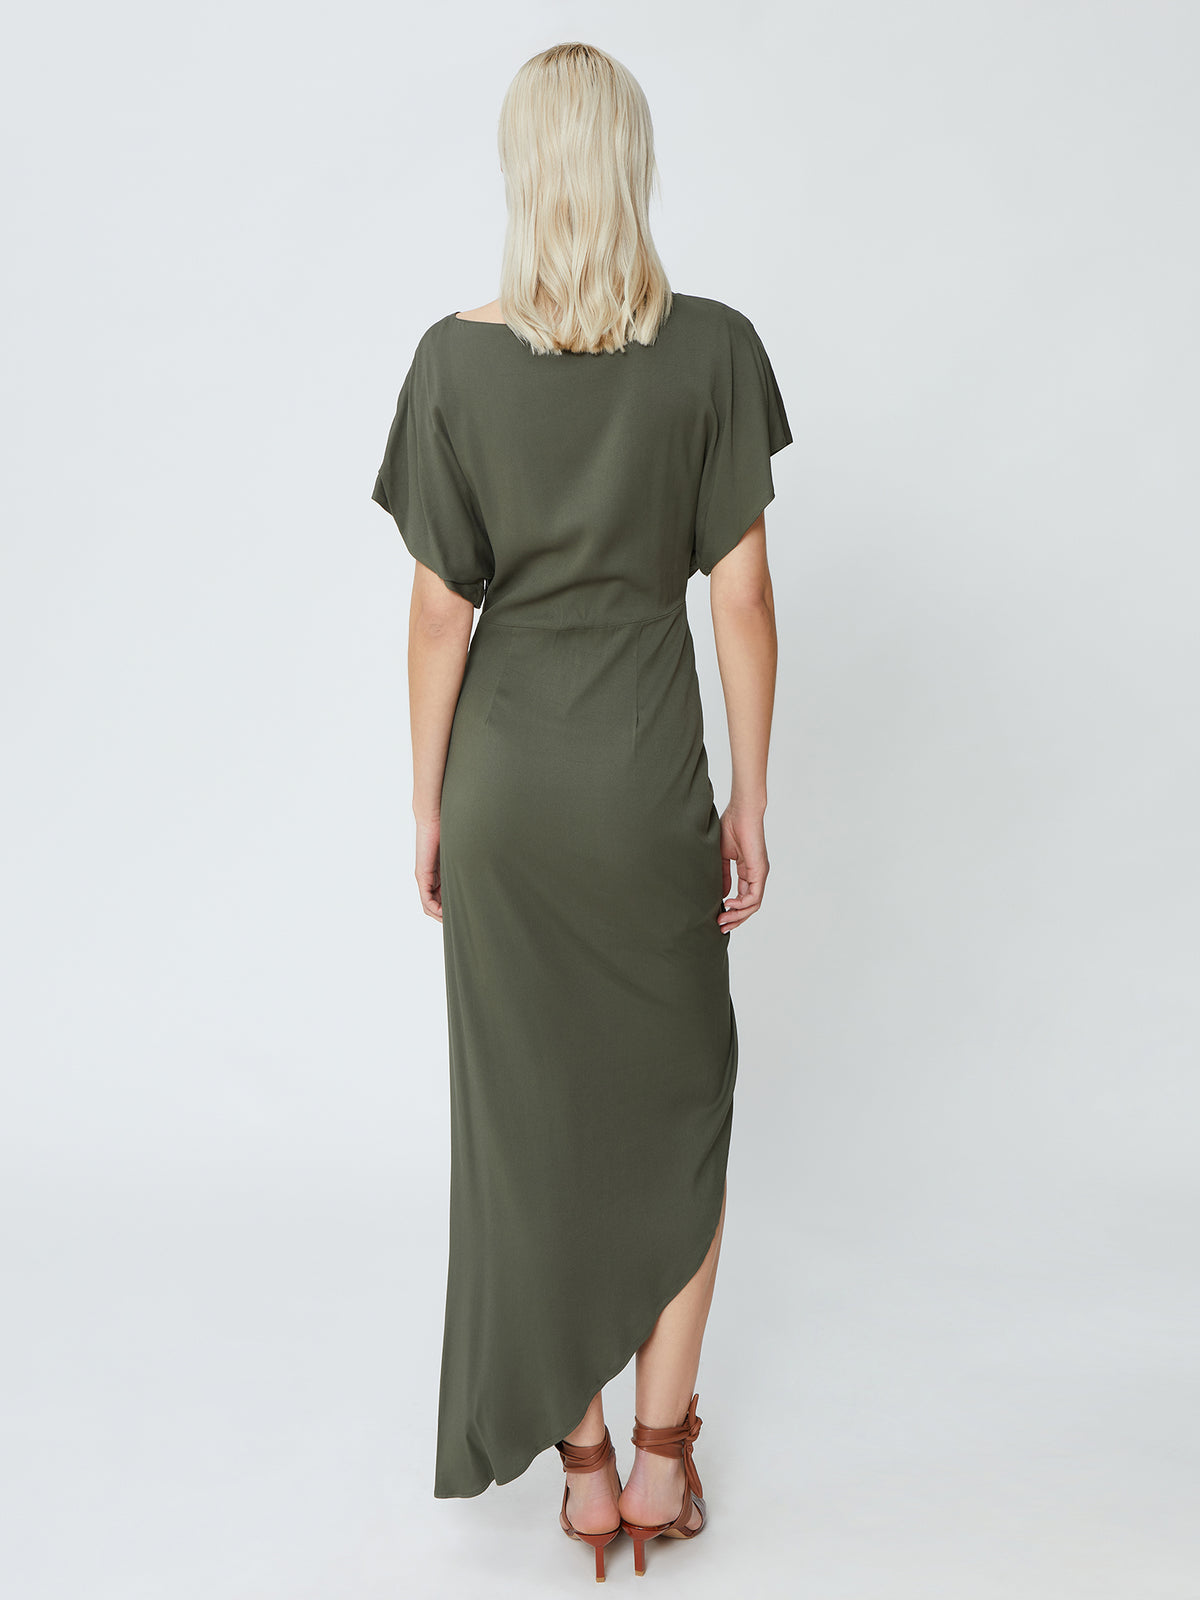 Power Dress - Khaki